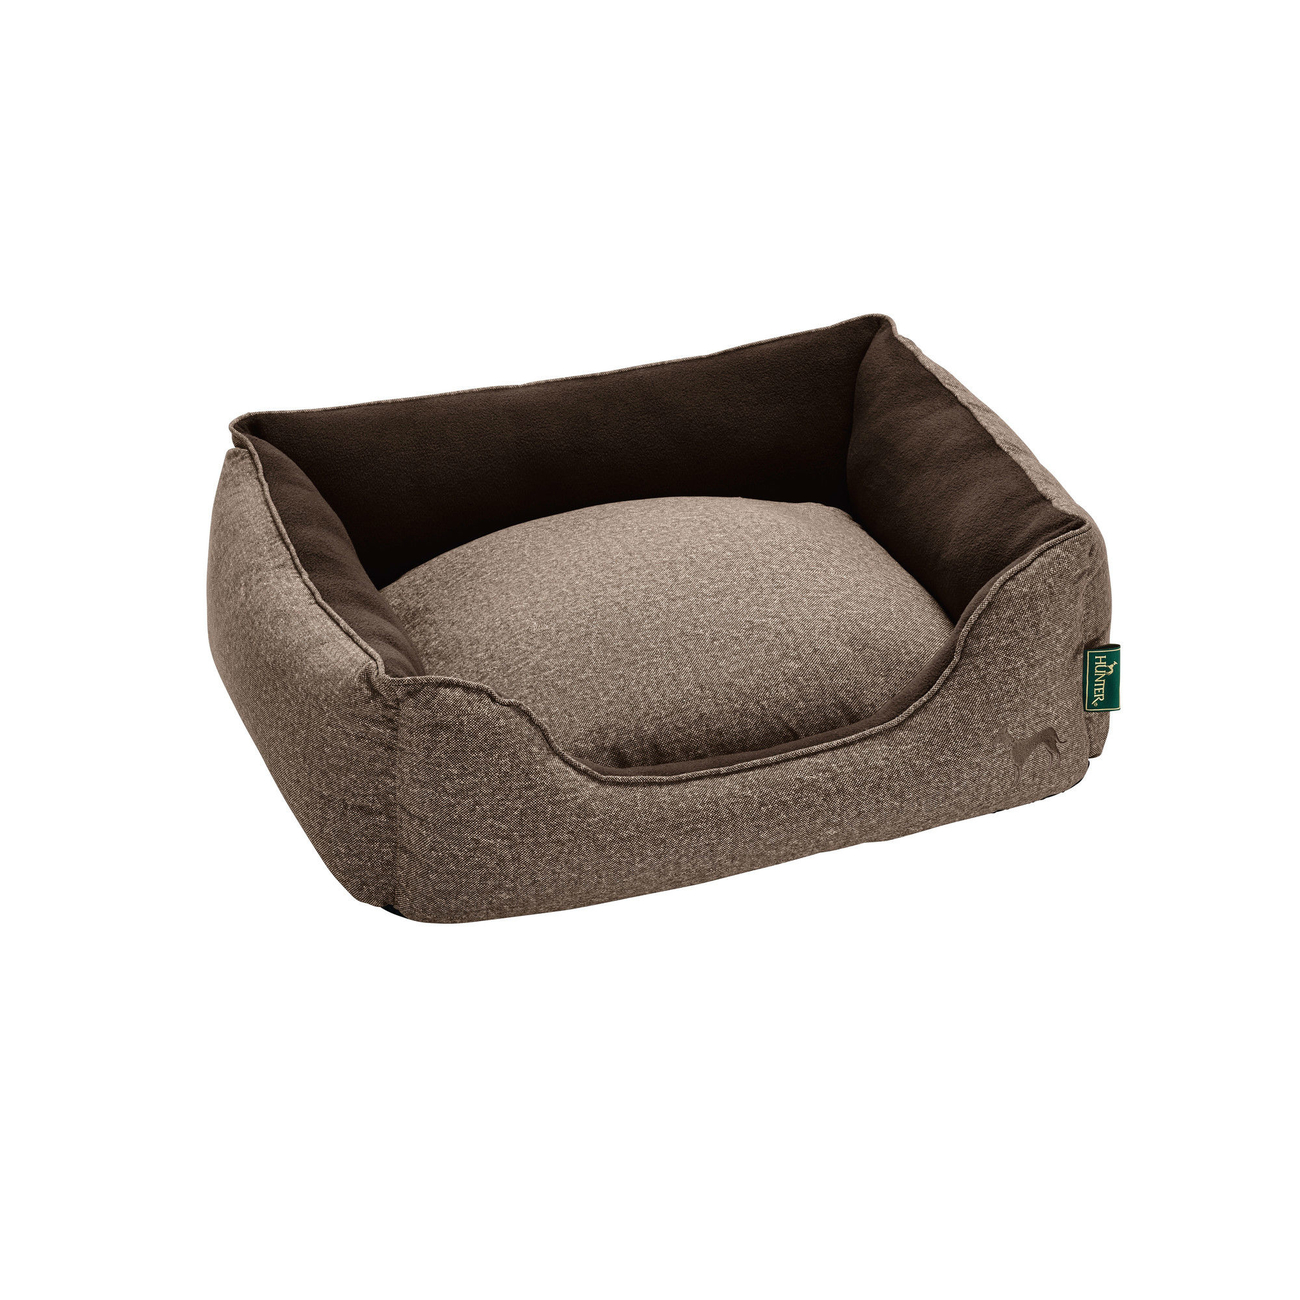 Hunter Hundebett Boston Cozy 66481, Bild 2